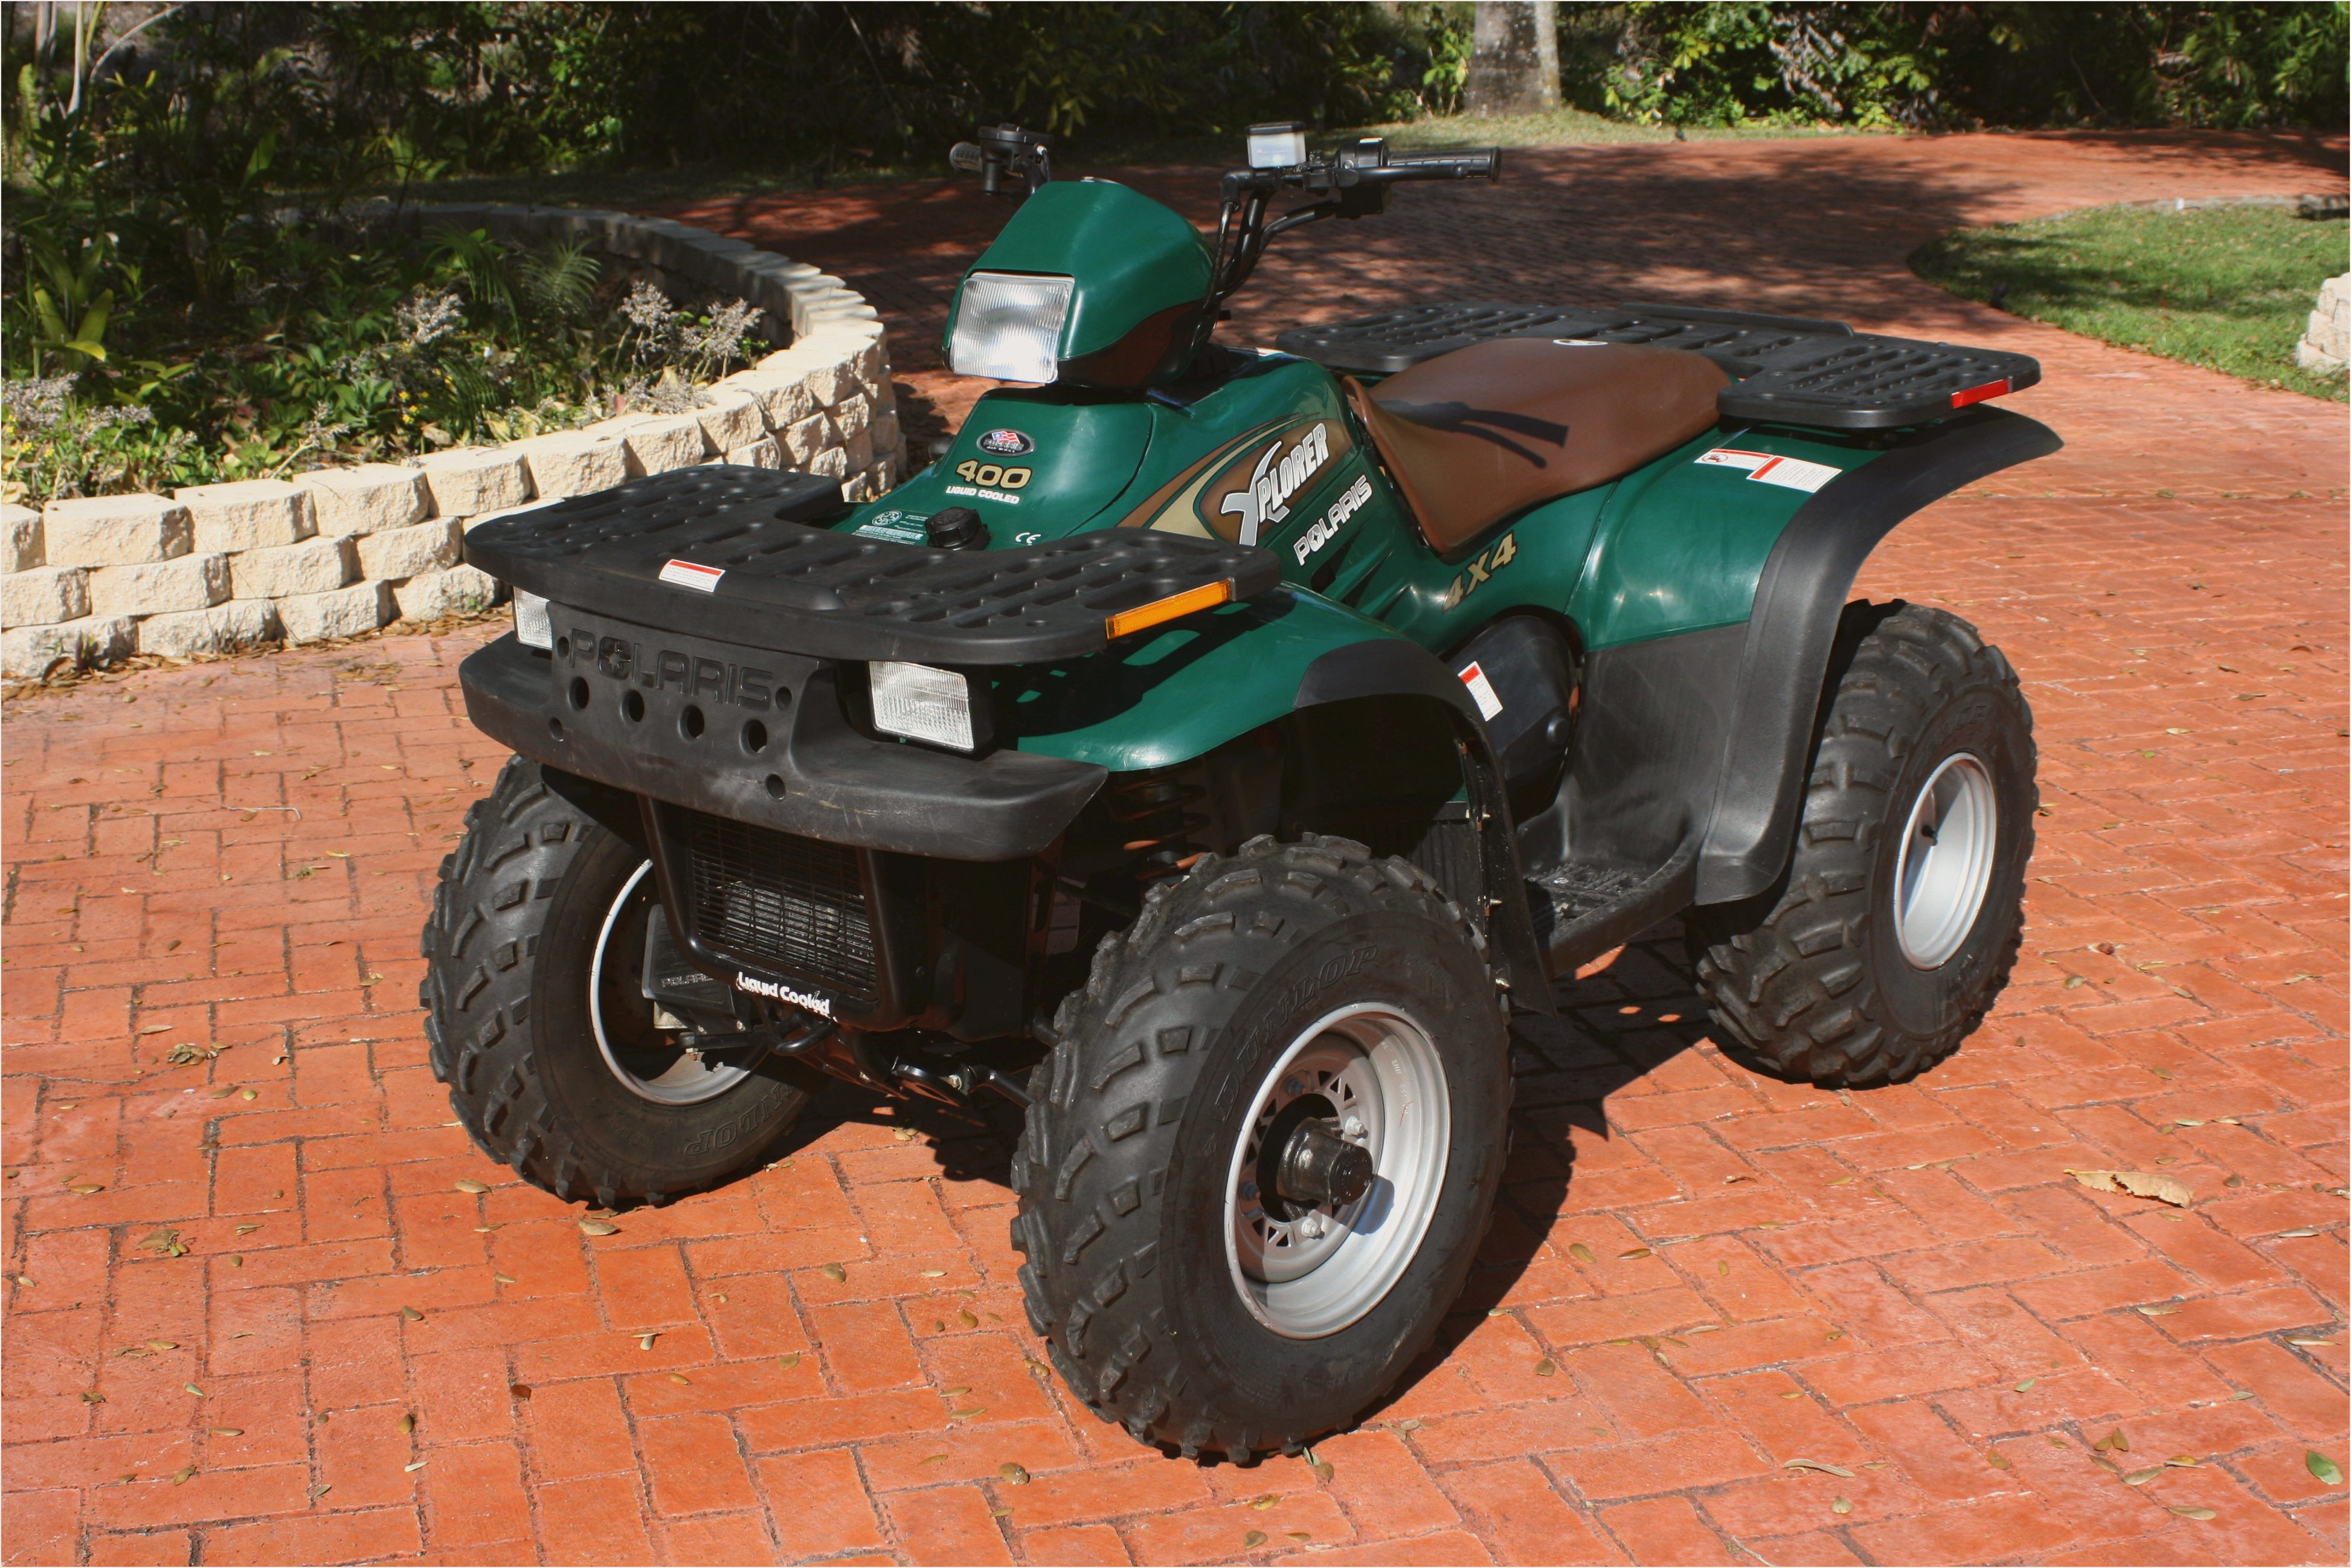 Polaris Xplorer 400 1998 images #120438